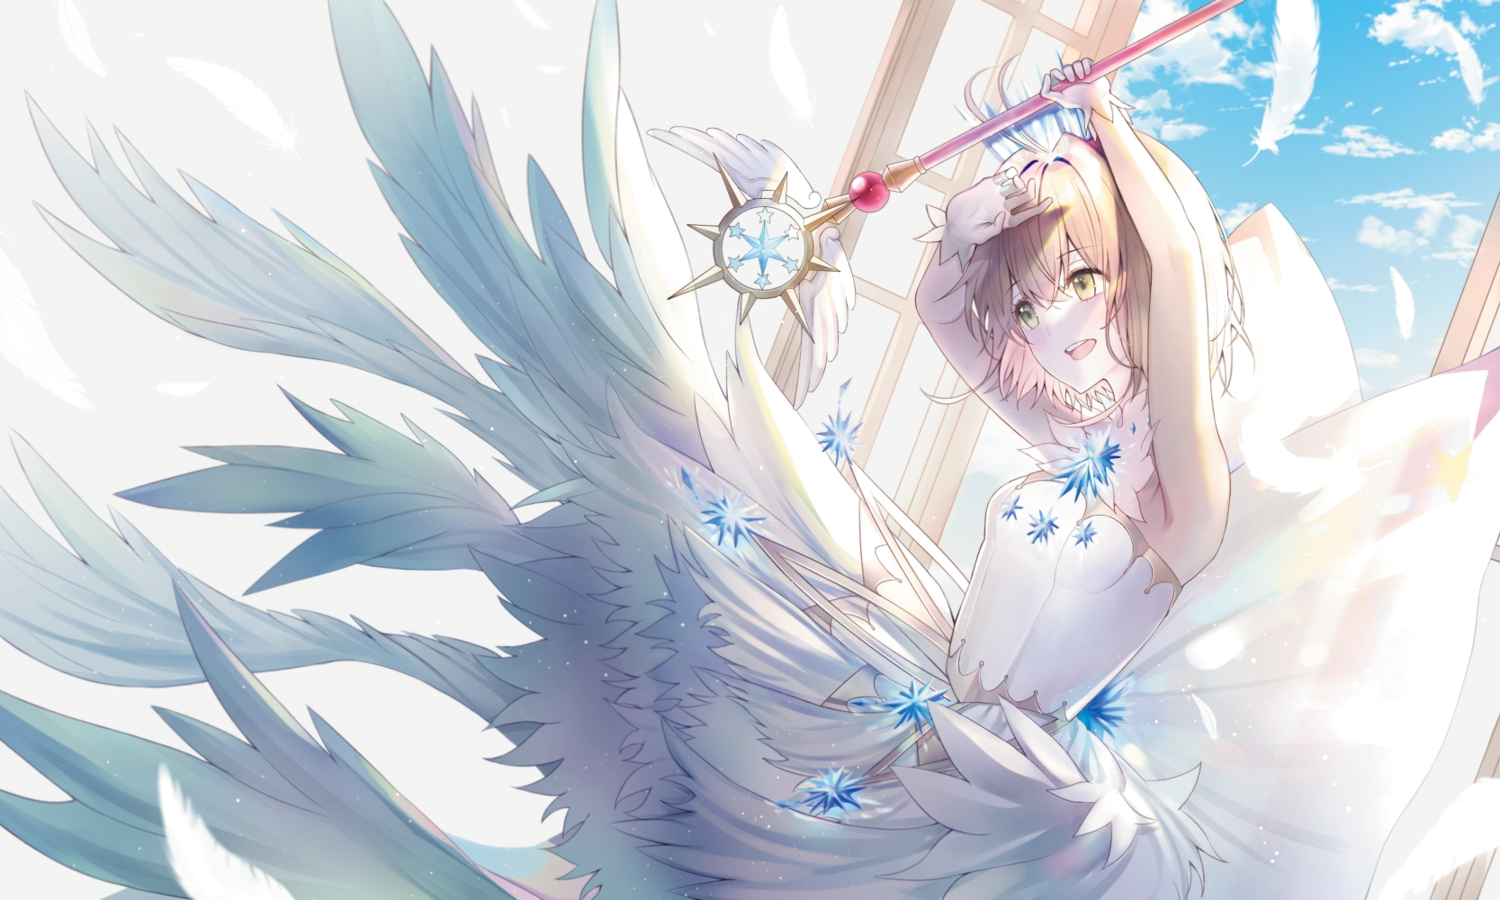 brown_hair card_captor_sakura clouds dress feathers gloves green_eyes kinomoto_sakura lium short_hair sky wand